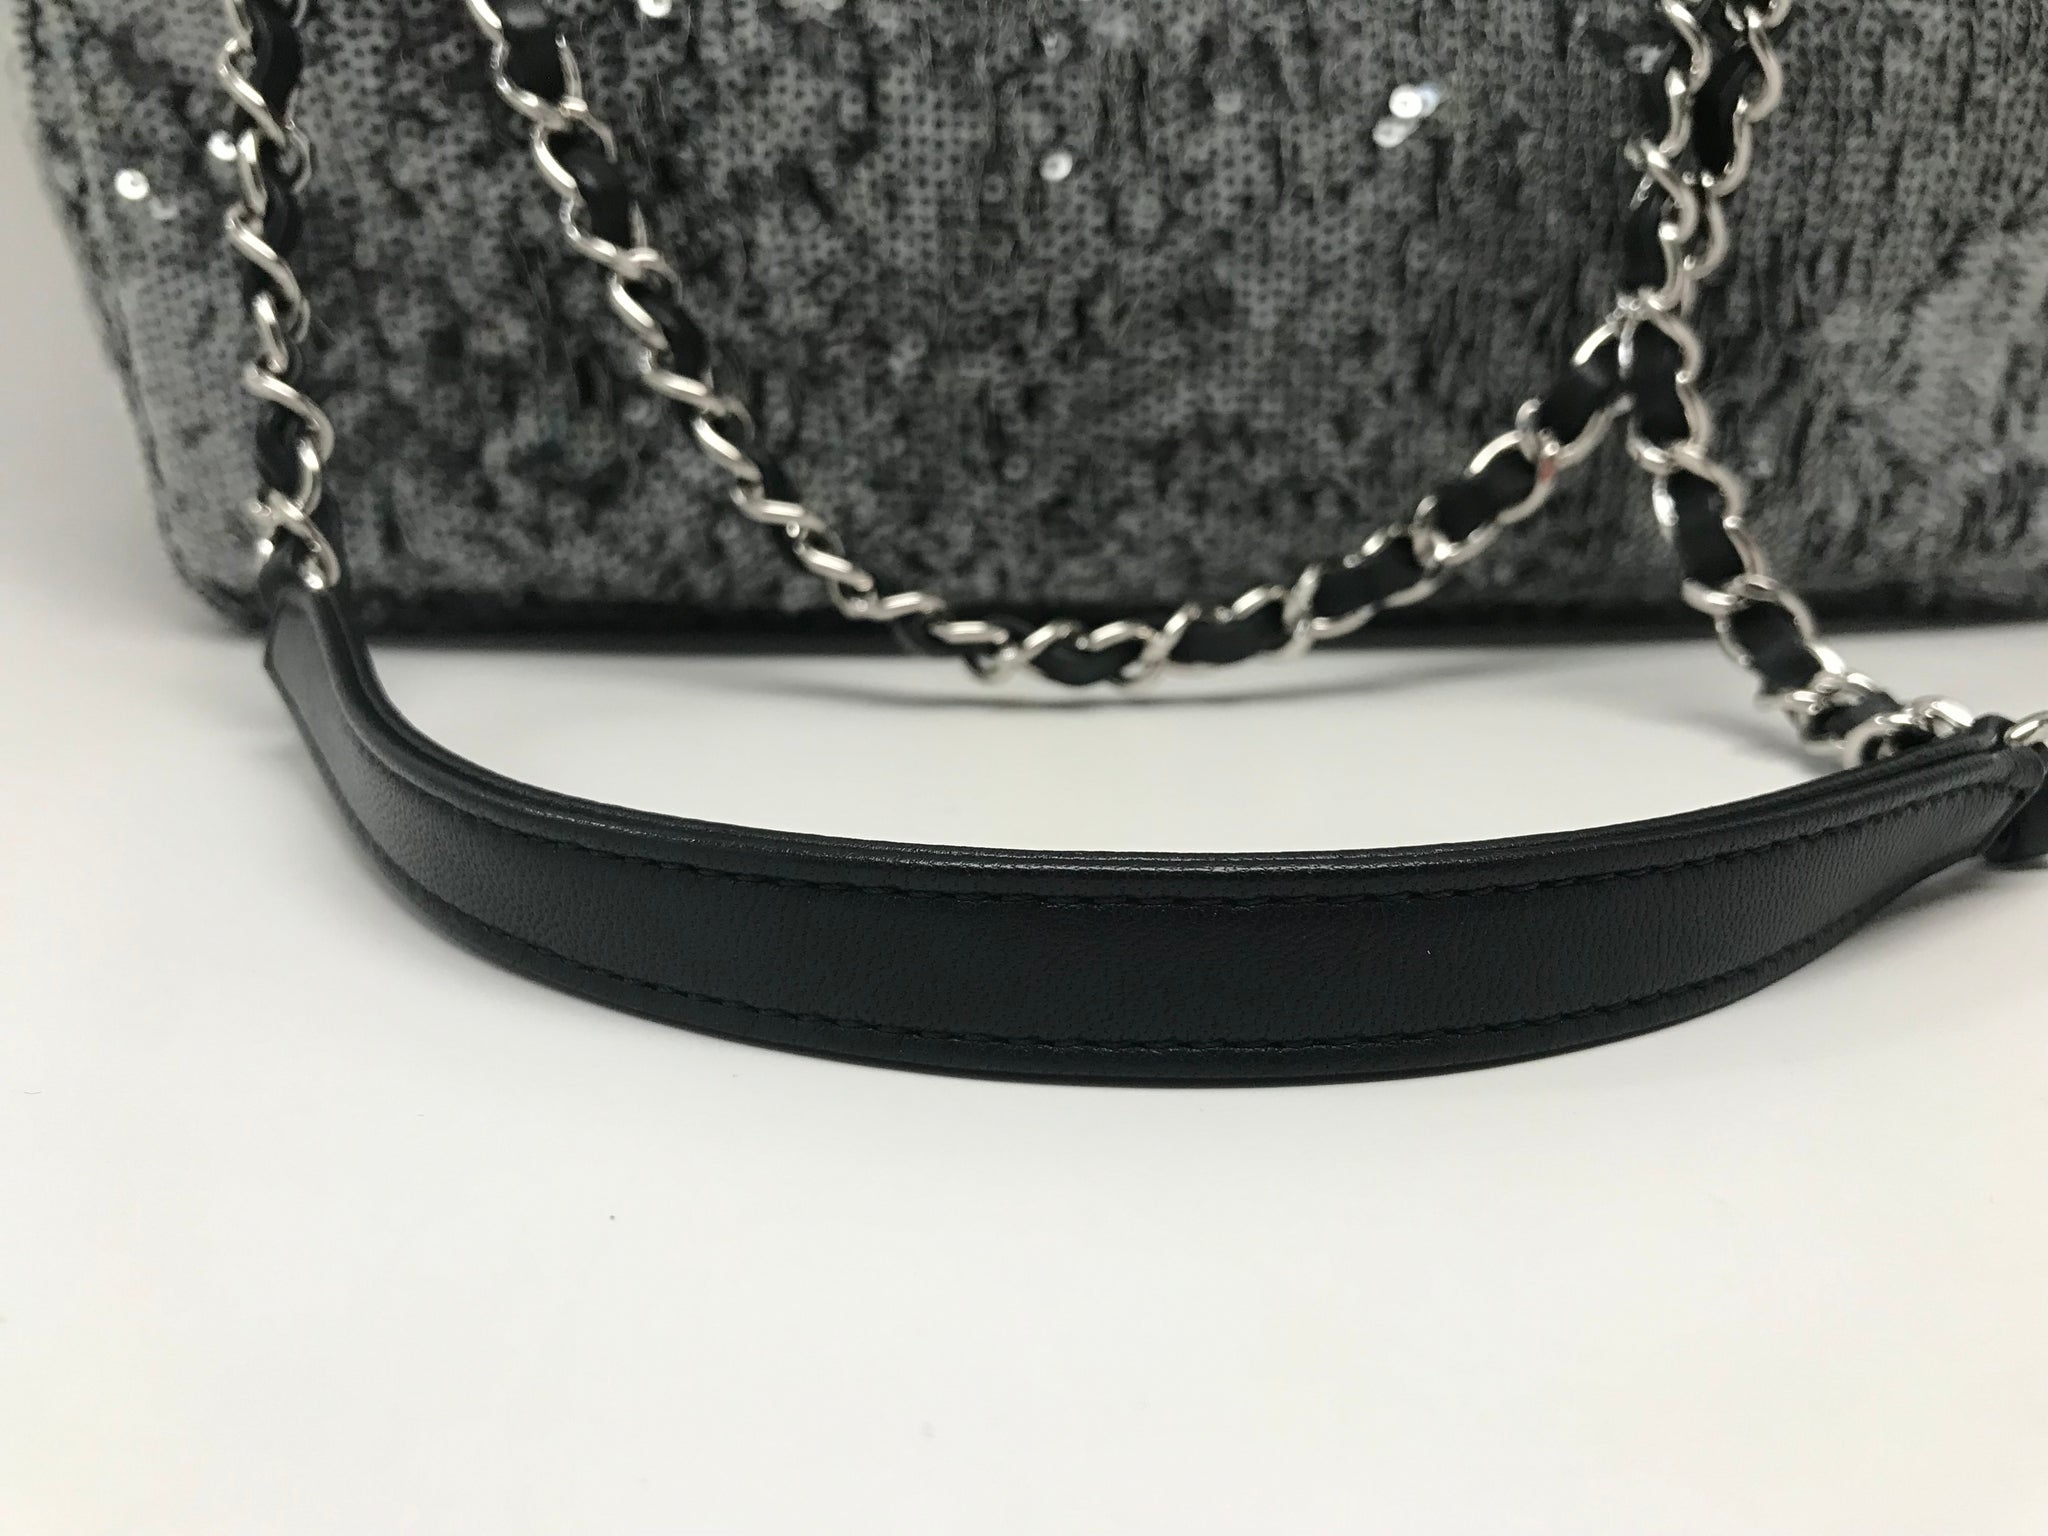 CHANEL JUMBO FLAP BAG - SILVER SEQUENCE